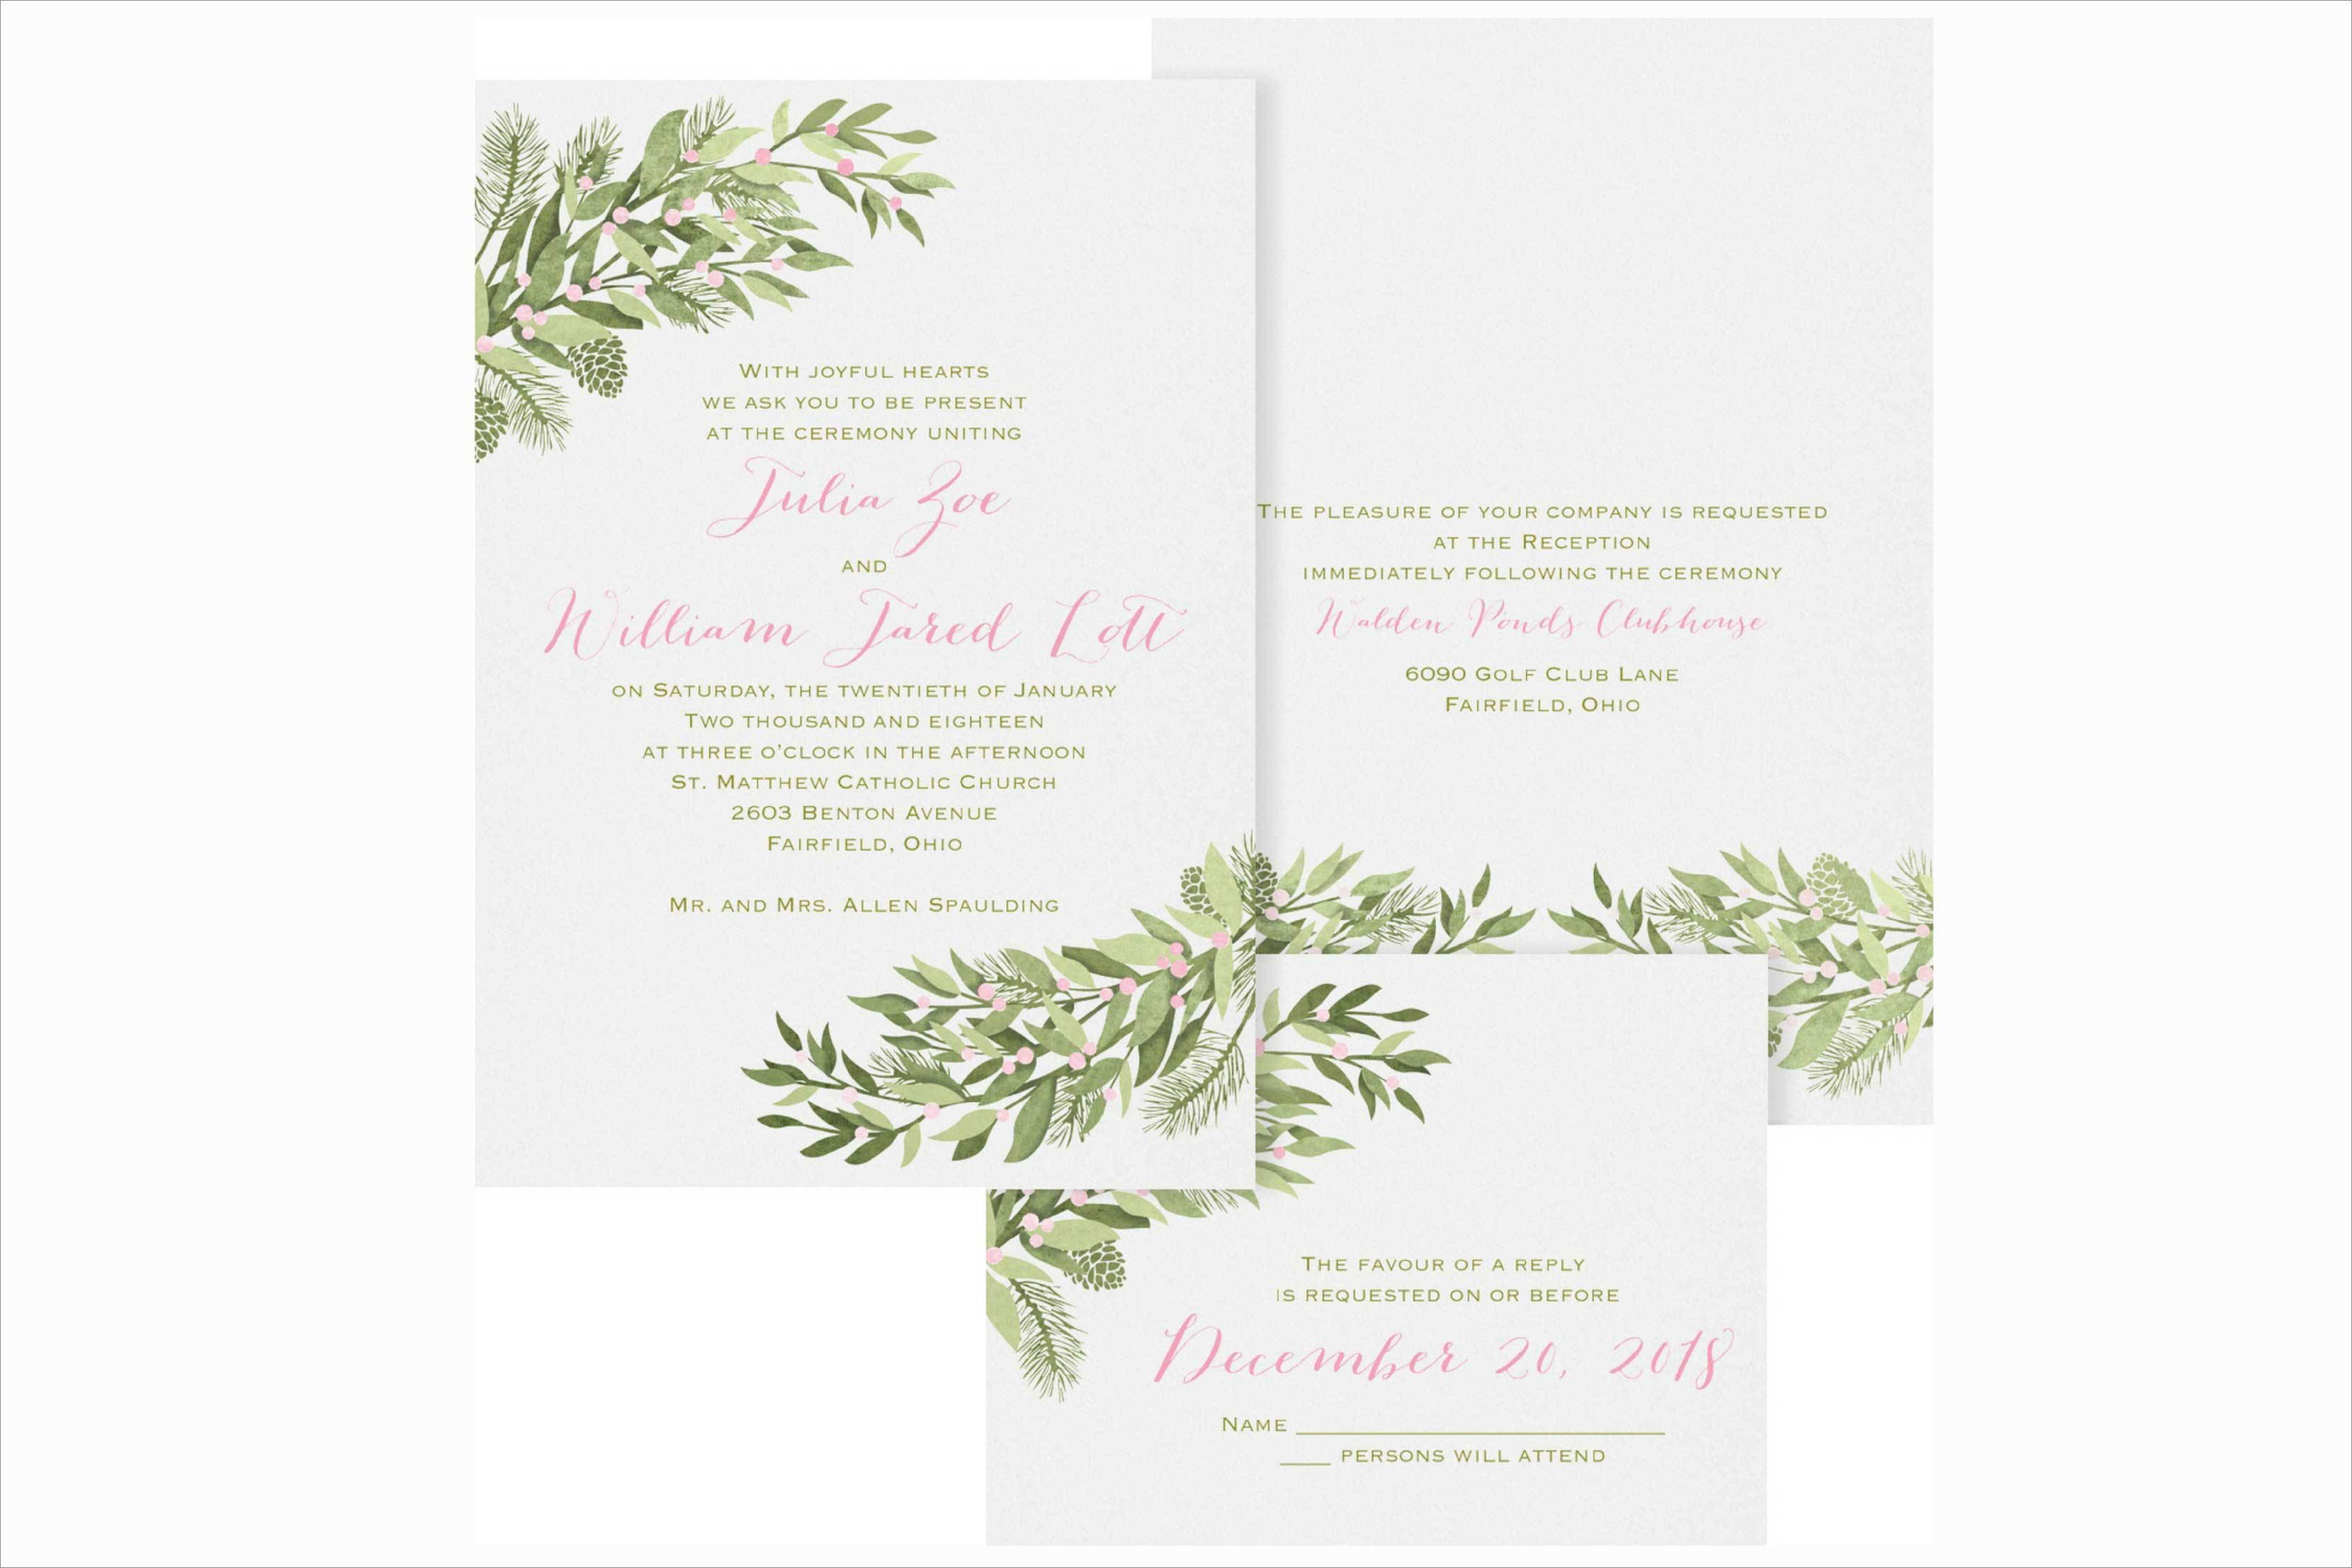 Carlson Craft Winter Berries winter wedding invitation